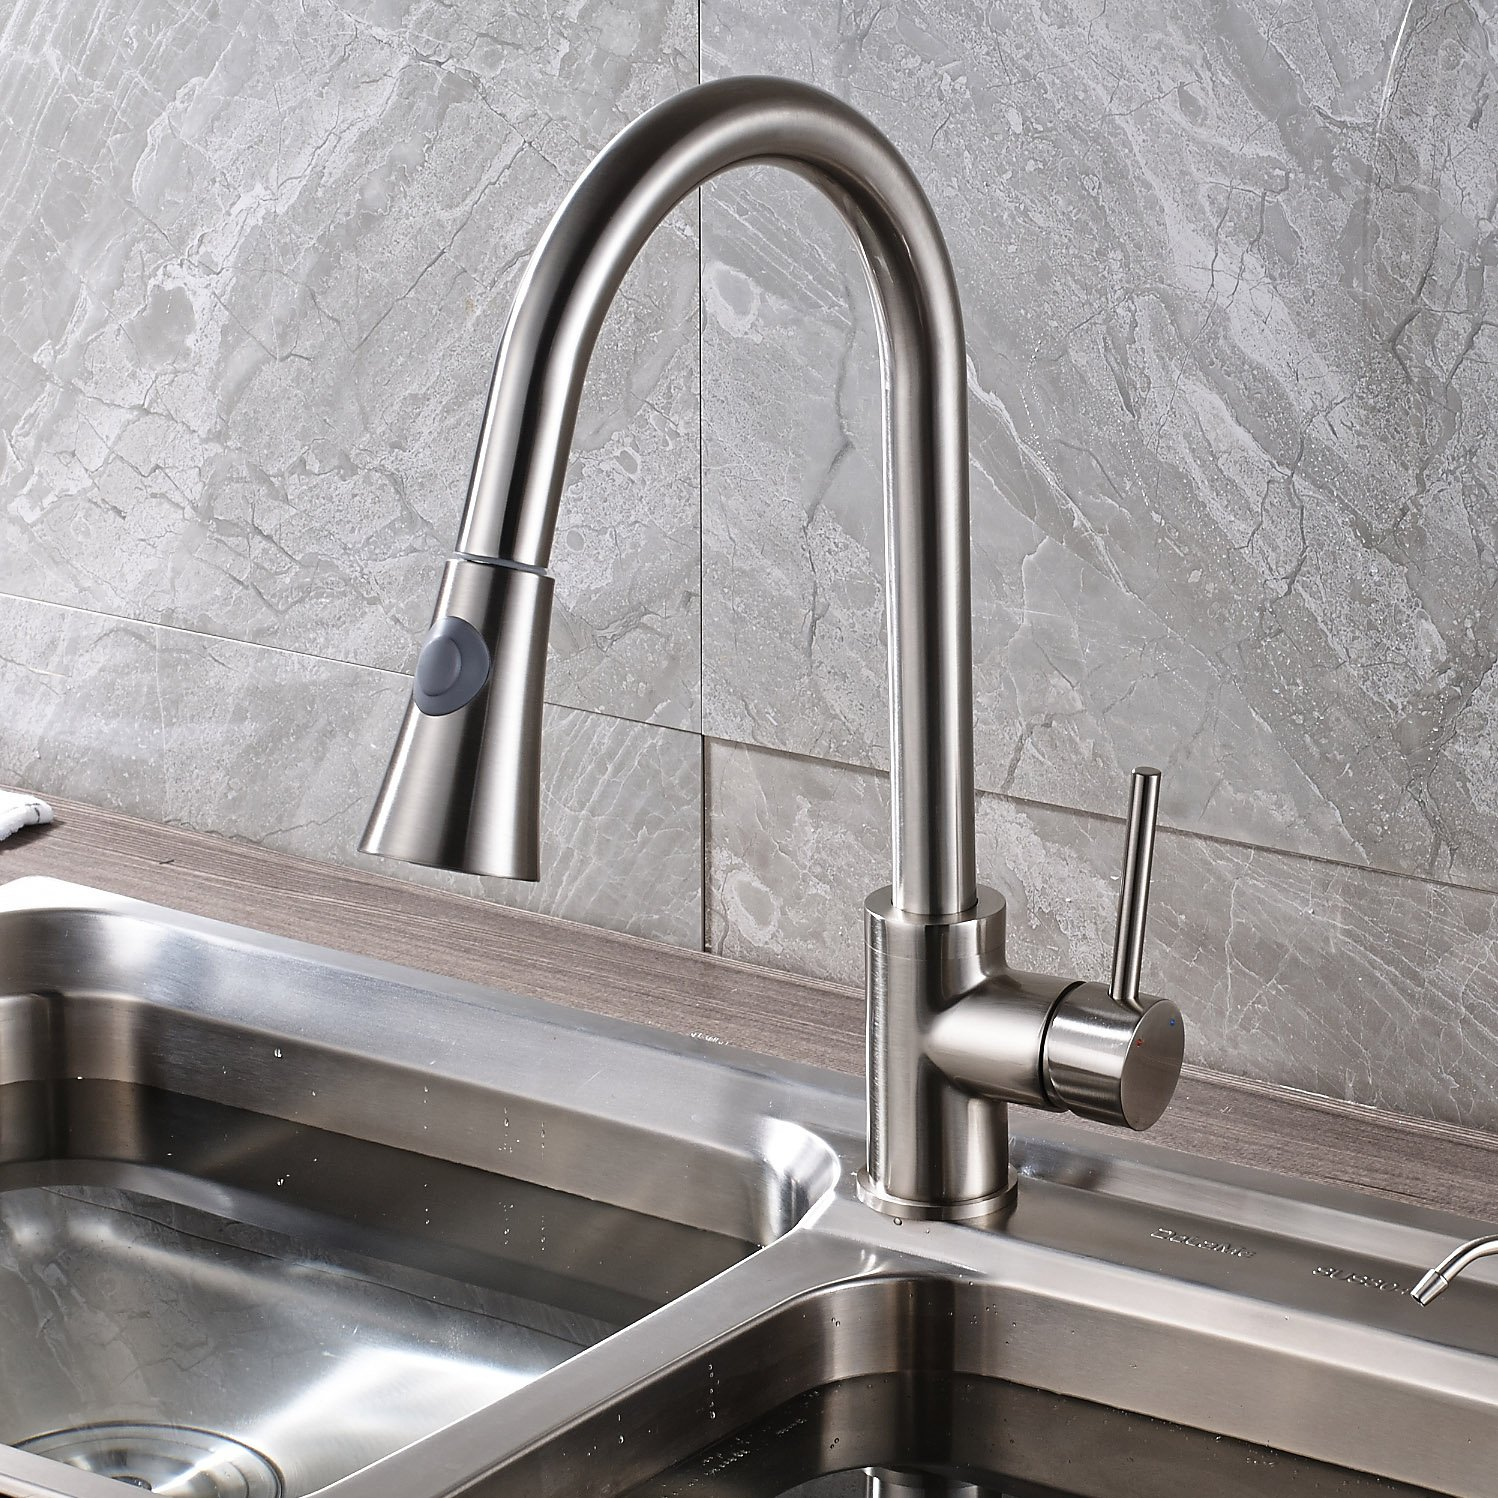 rozin single handle kitchen sink faucet pull out spray deck